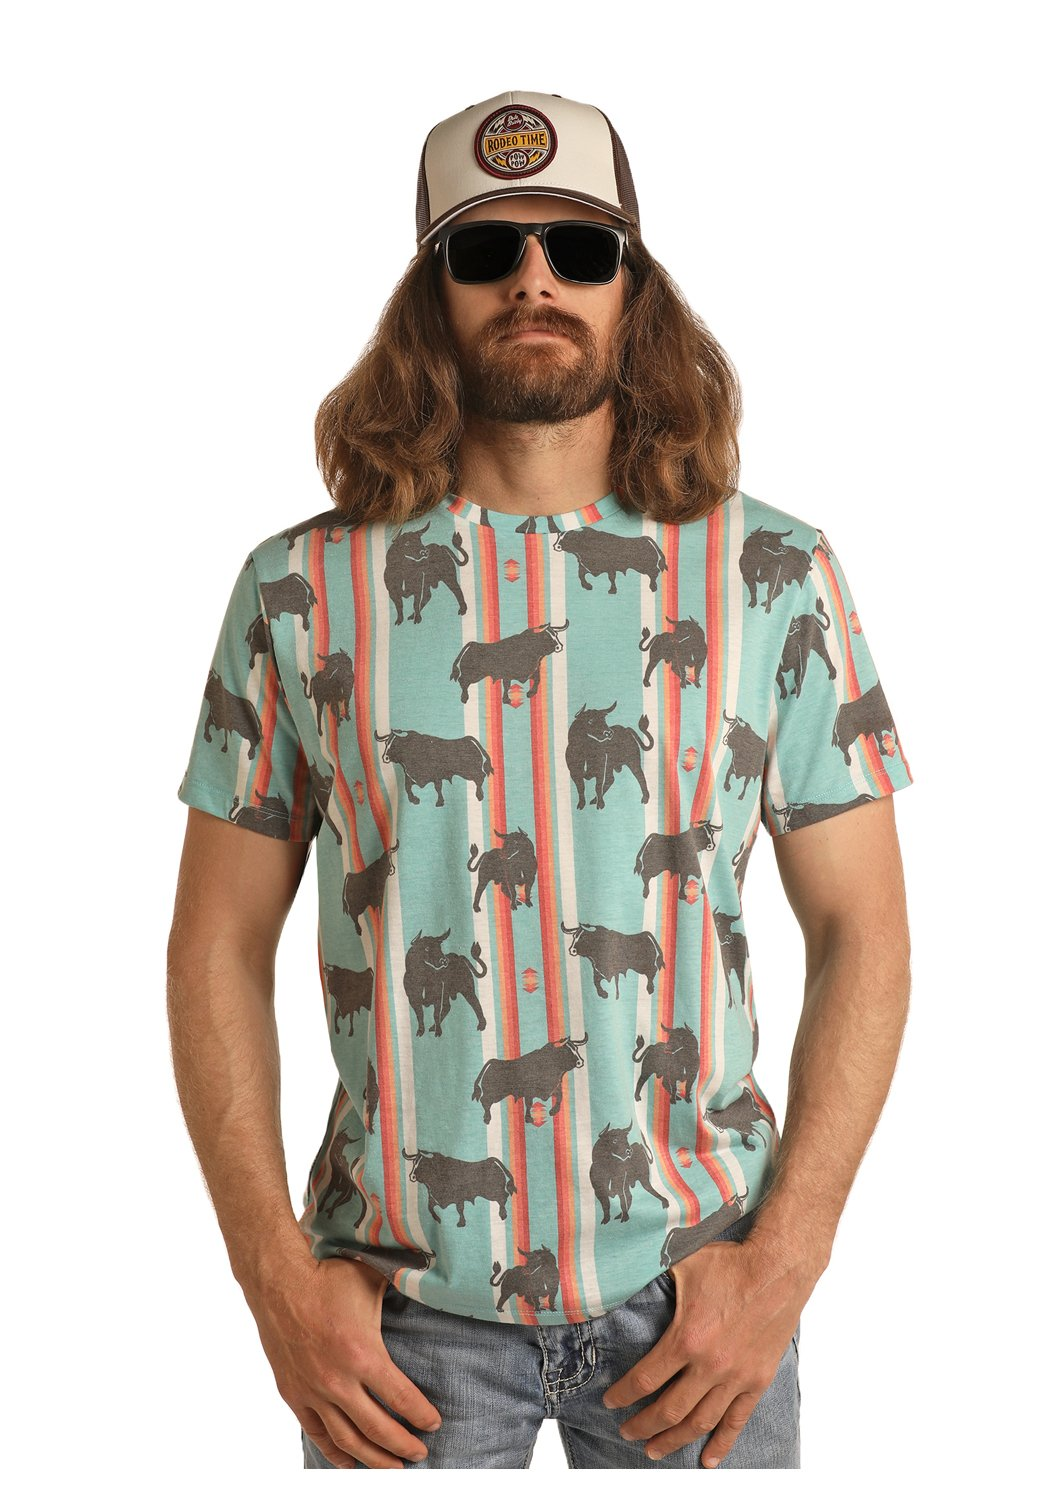 Rock and Roll Cowboy Mens Dale Brisby Bull Serape Tee